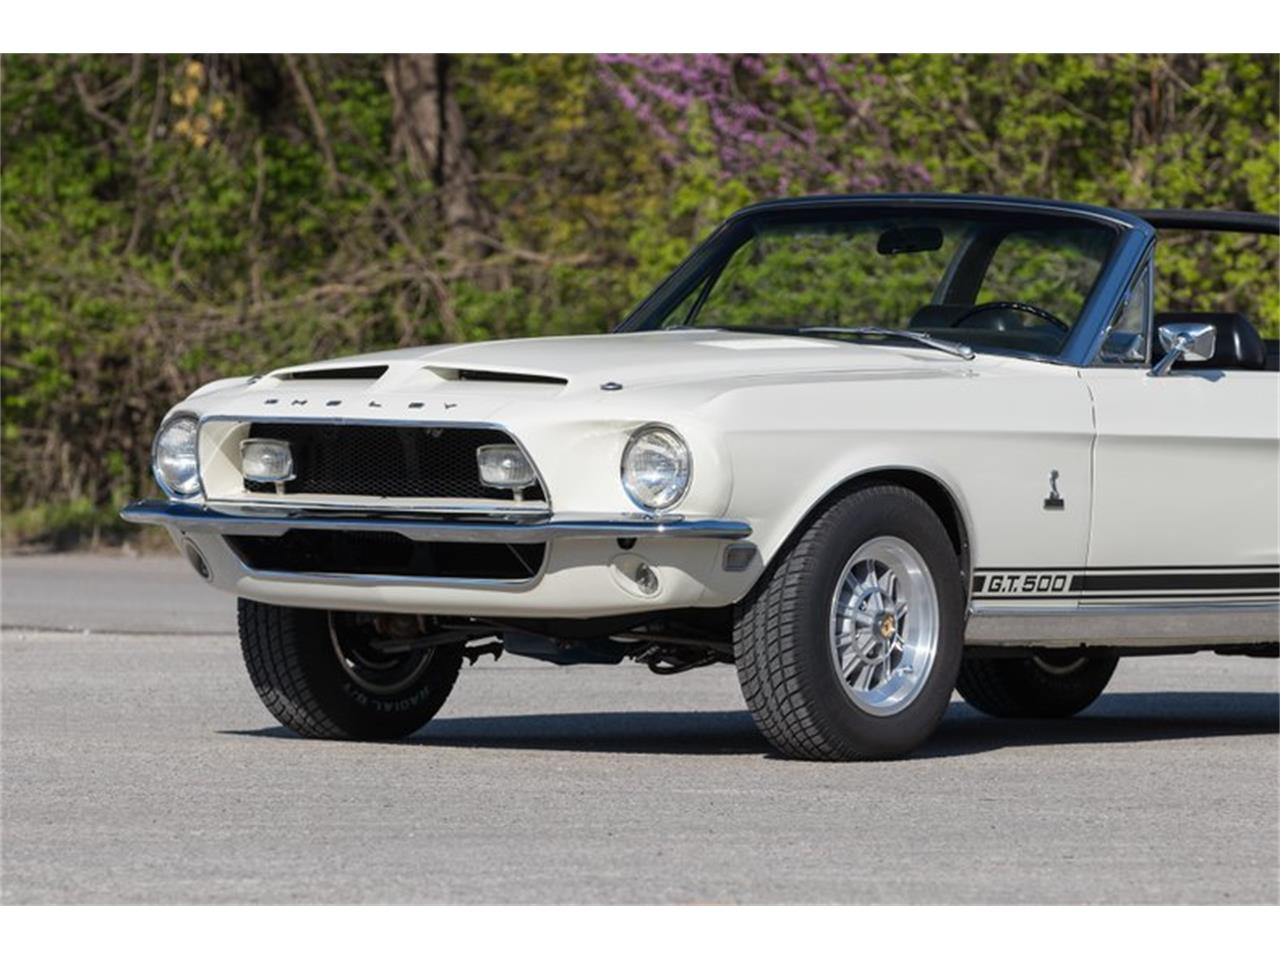 Large Picture of '68 GT500 - $157,500.00 Offered by Fast Lane Classic Cars Inc. - PWHW